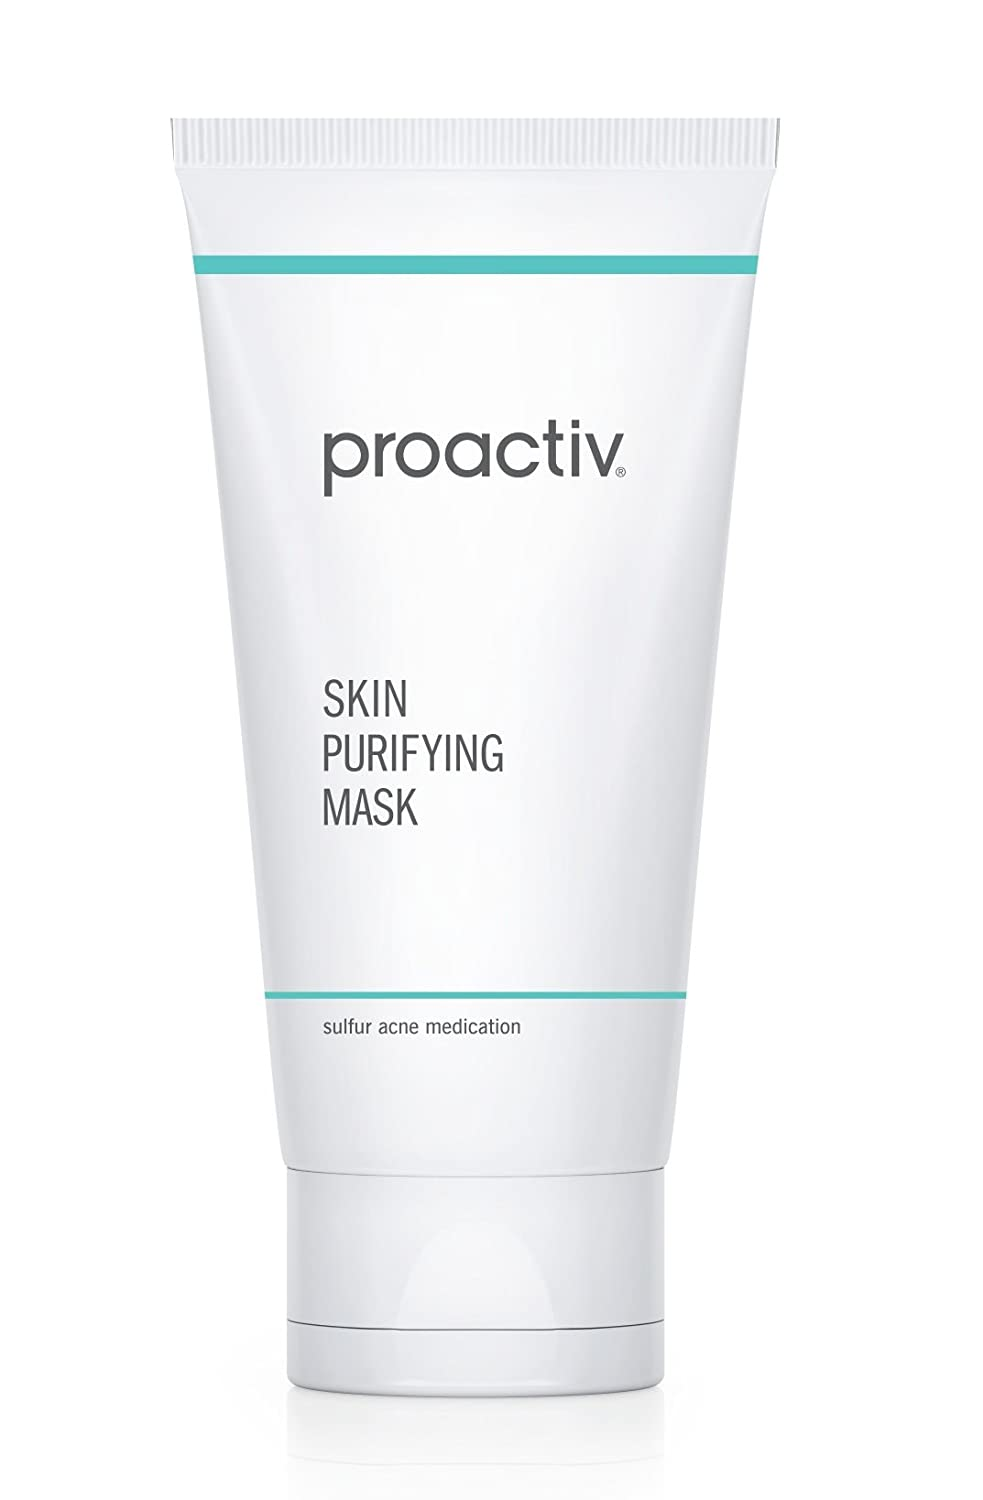 Proactiv Skin Purifying Mask, 3 Ounce (90 Day) Guthy Renker NA